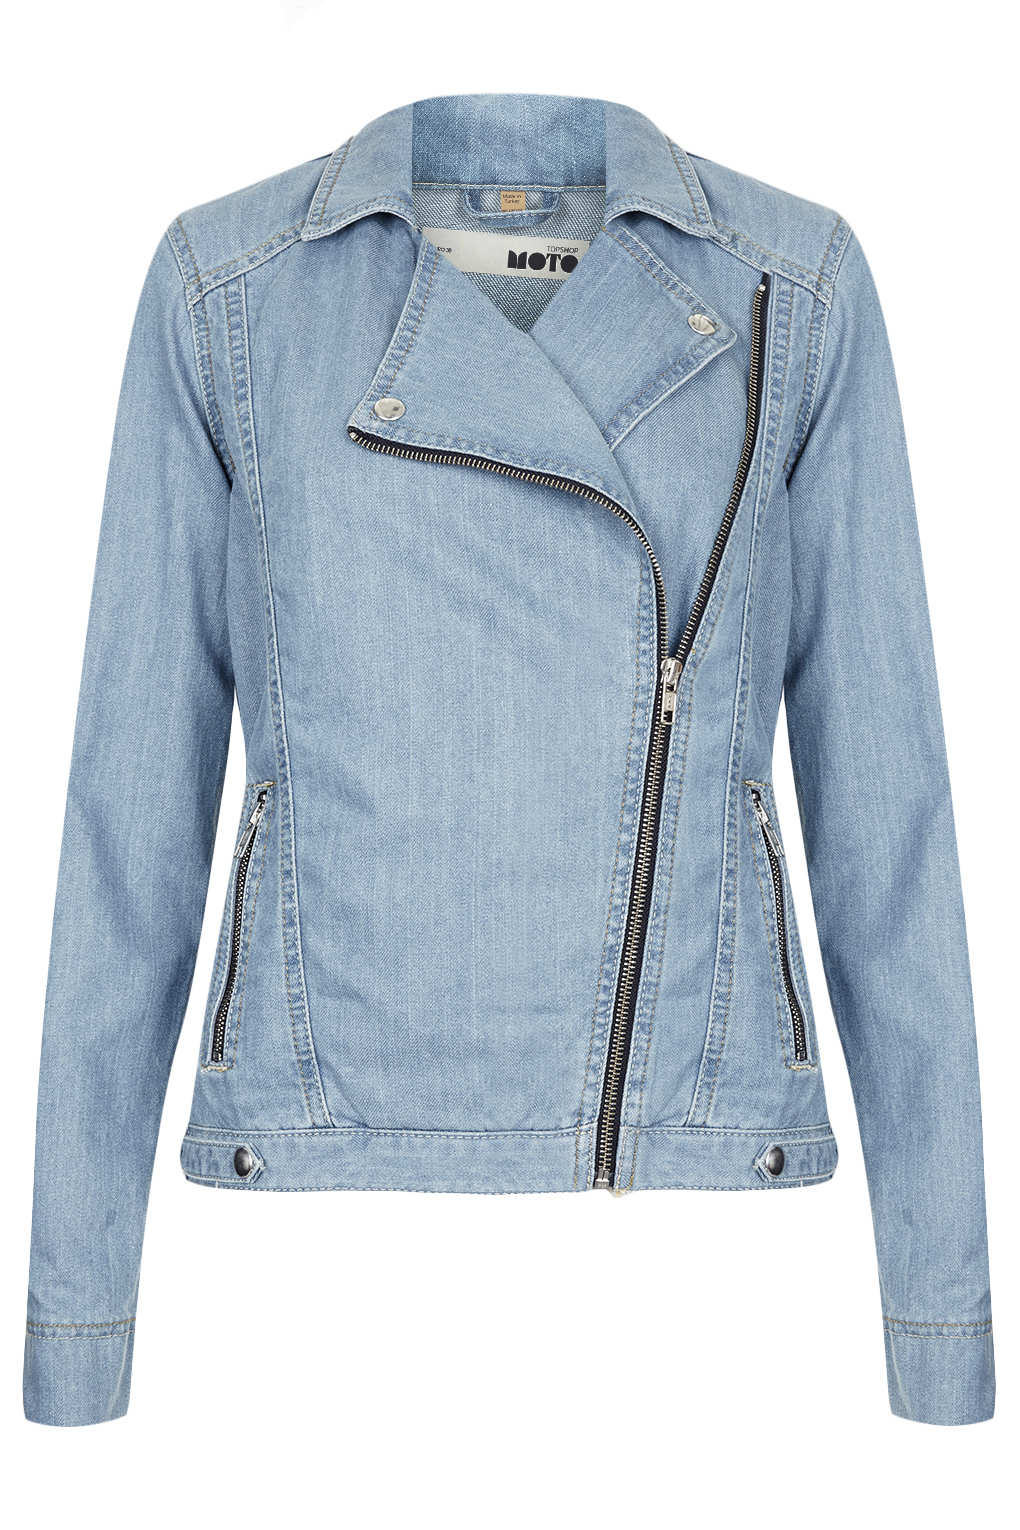 Topshop moto blue denim biker jacket in blue lyst for Womens denim shirts topshop